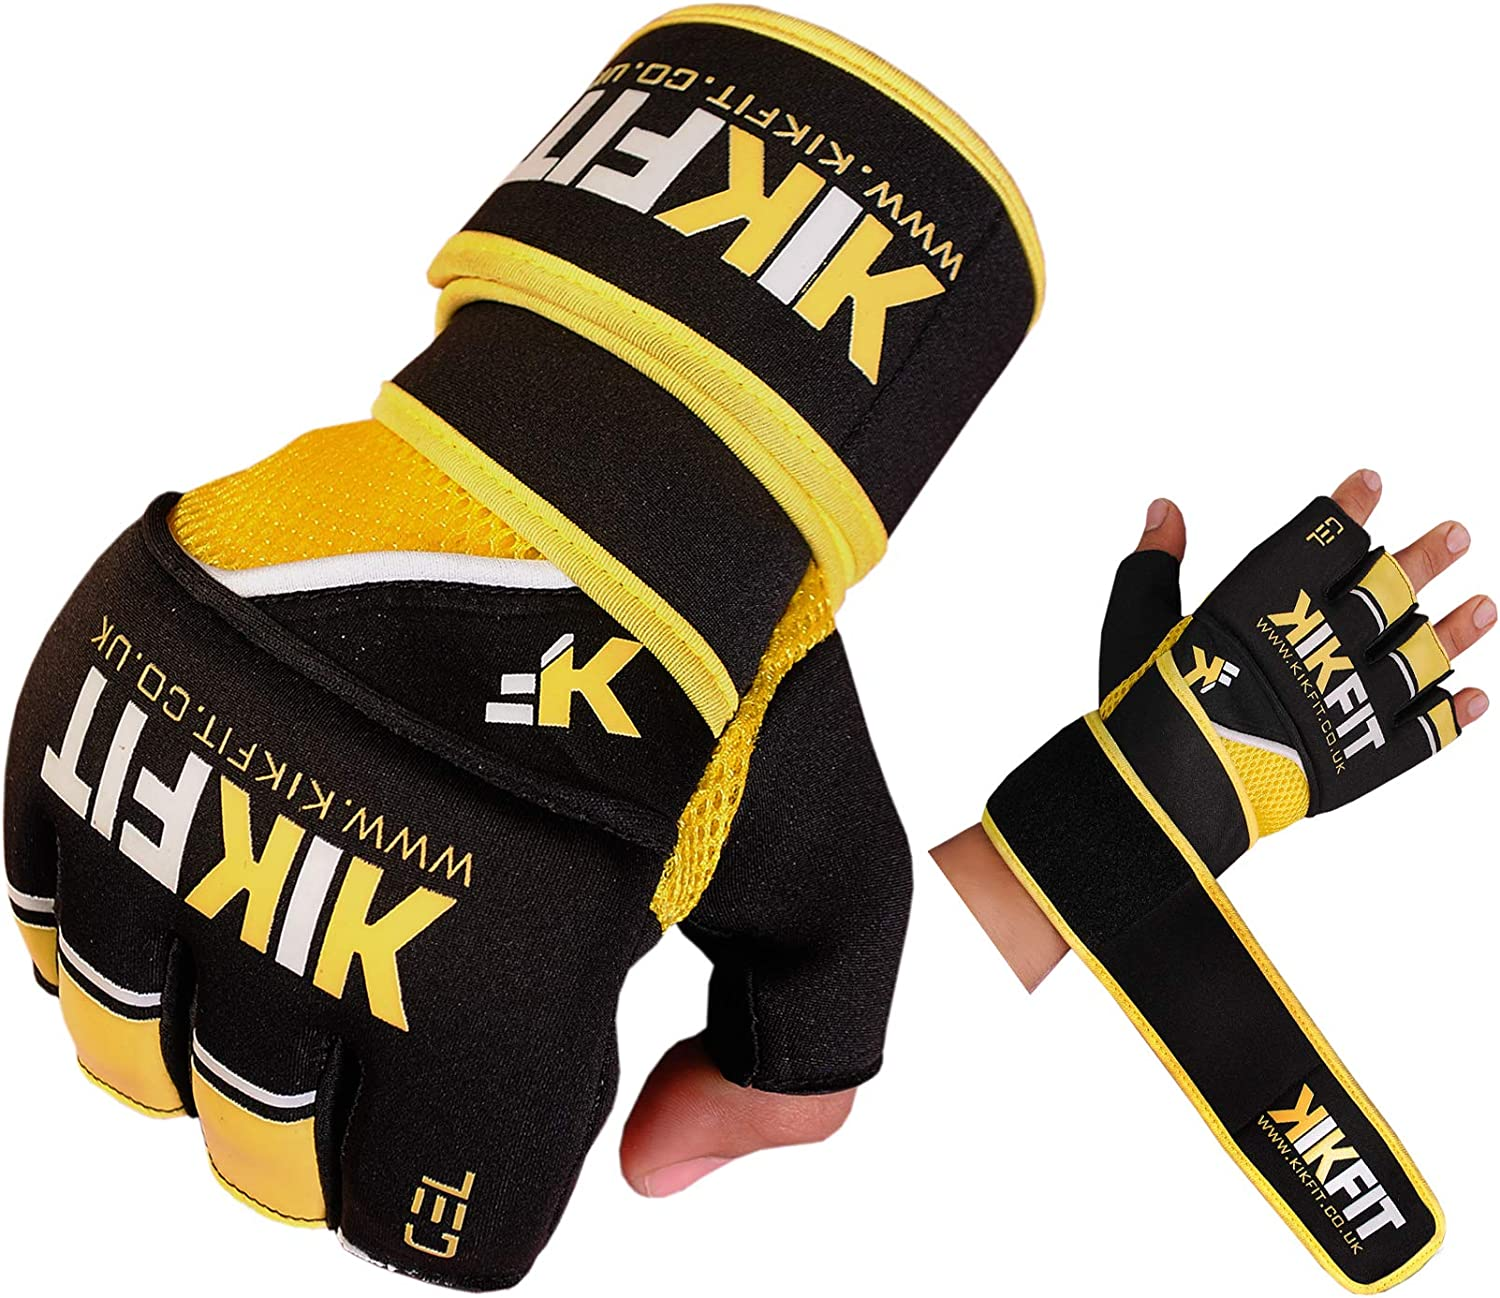 KIKFIT MMA Grappling Gloves Sparring Training Gel Padded Mitts UFC Punching Bag Cage Fighting Boxing Mixed Martial Arts Muay Thai Strike Kickboxing Gloves